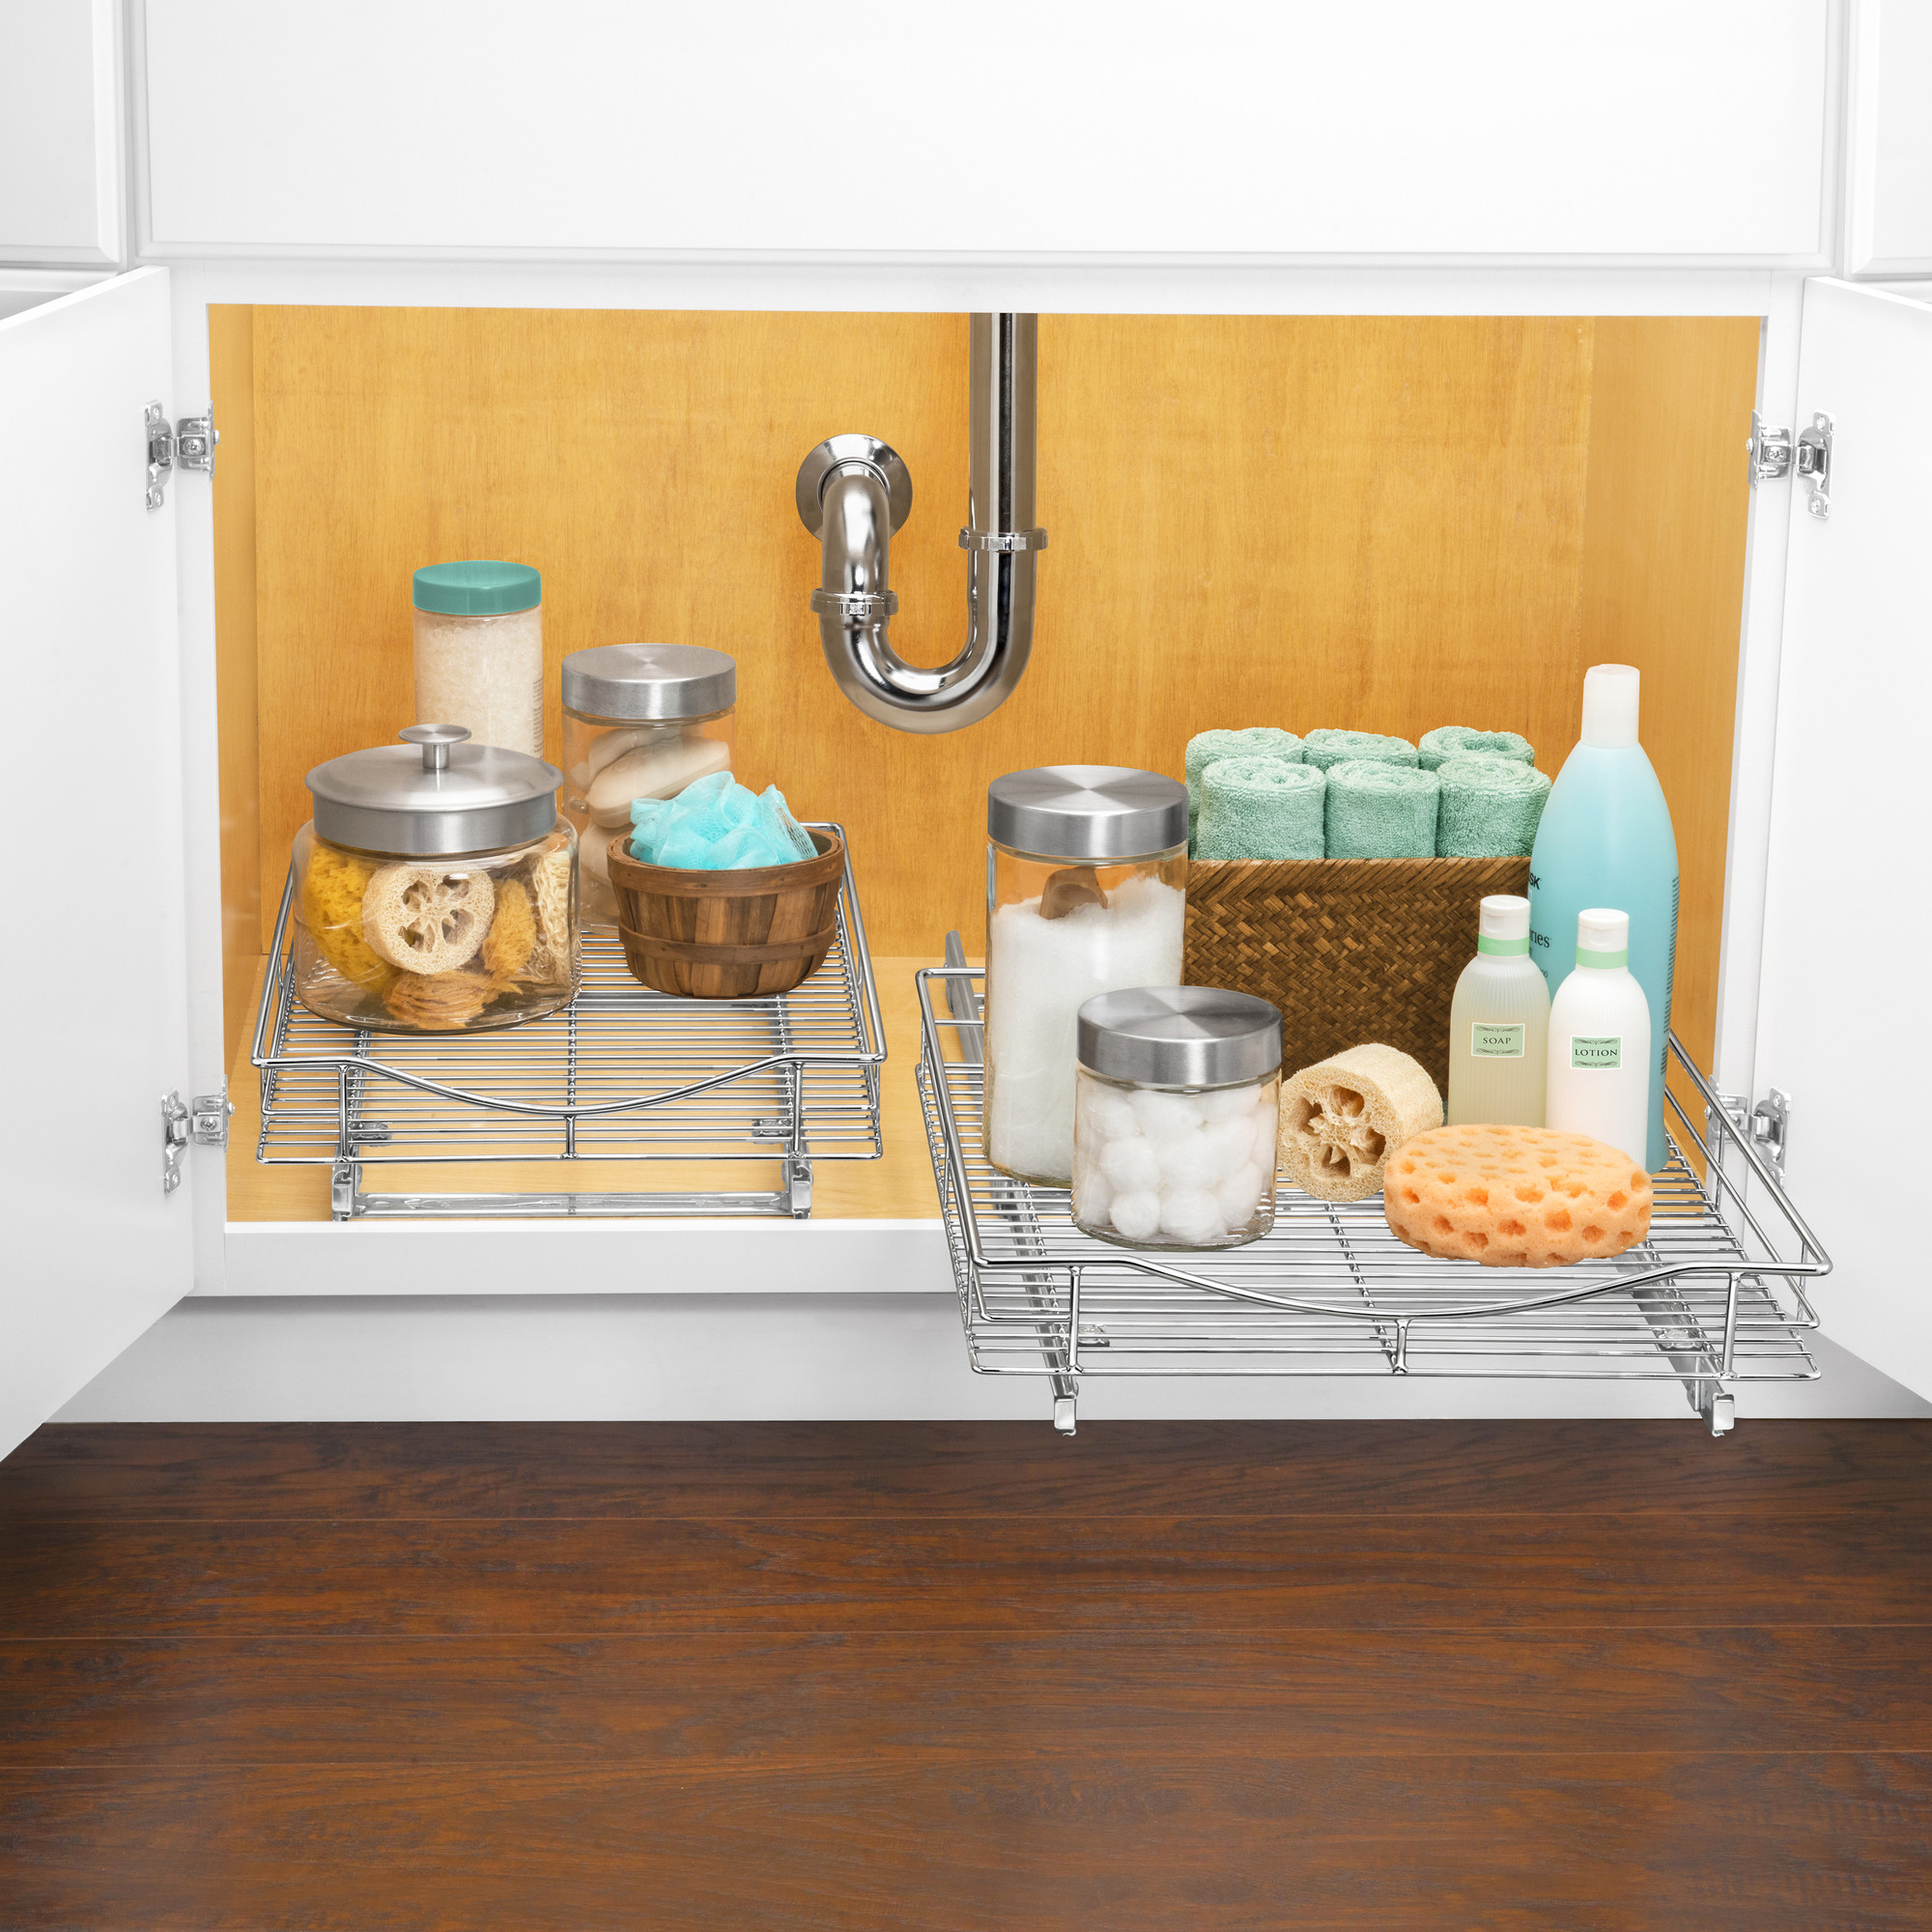 under slide pull cabinet d organizer professional w sliding ip shelf walmart chrome lynk com out x